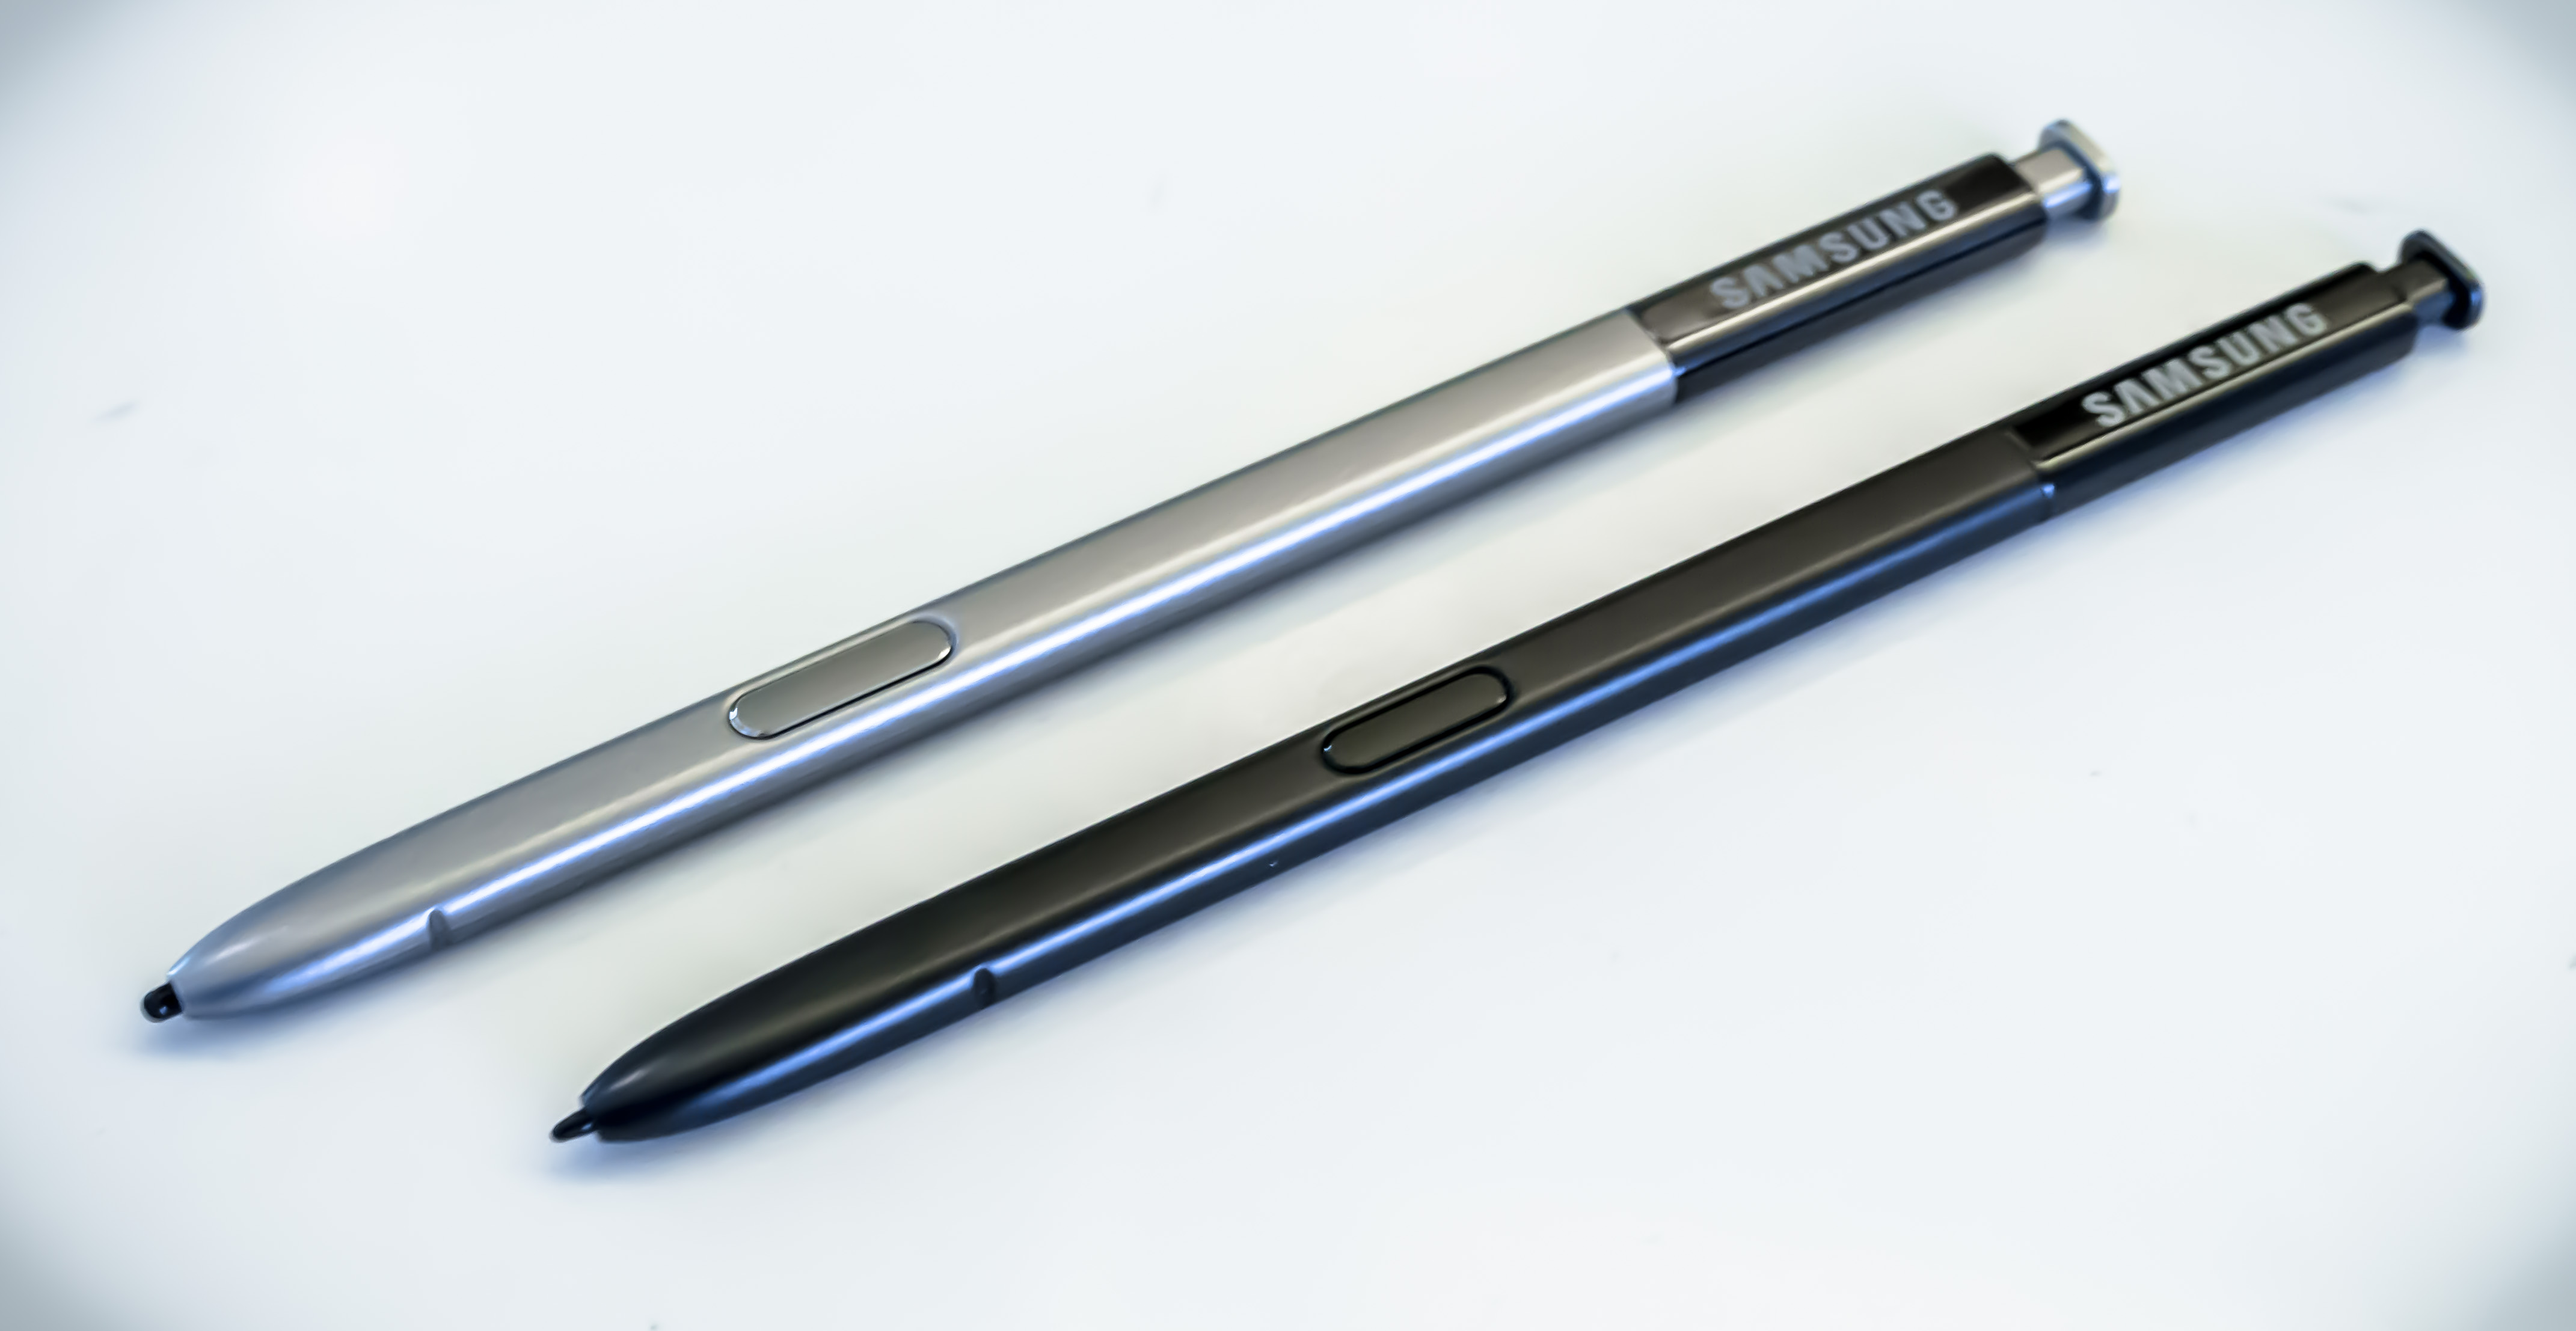 Samsung's Galaxy Note5 S Pen (top) compared to the Note7.